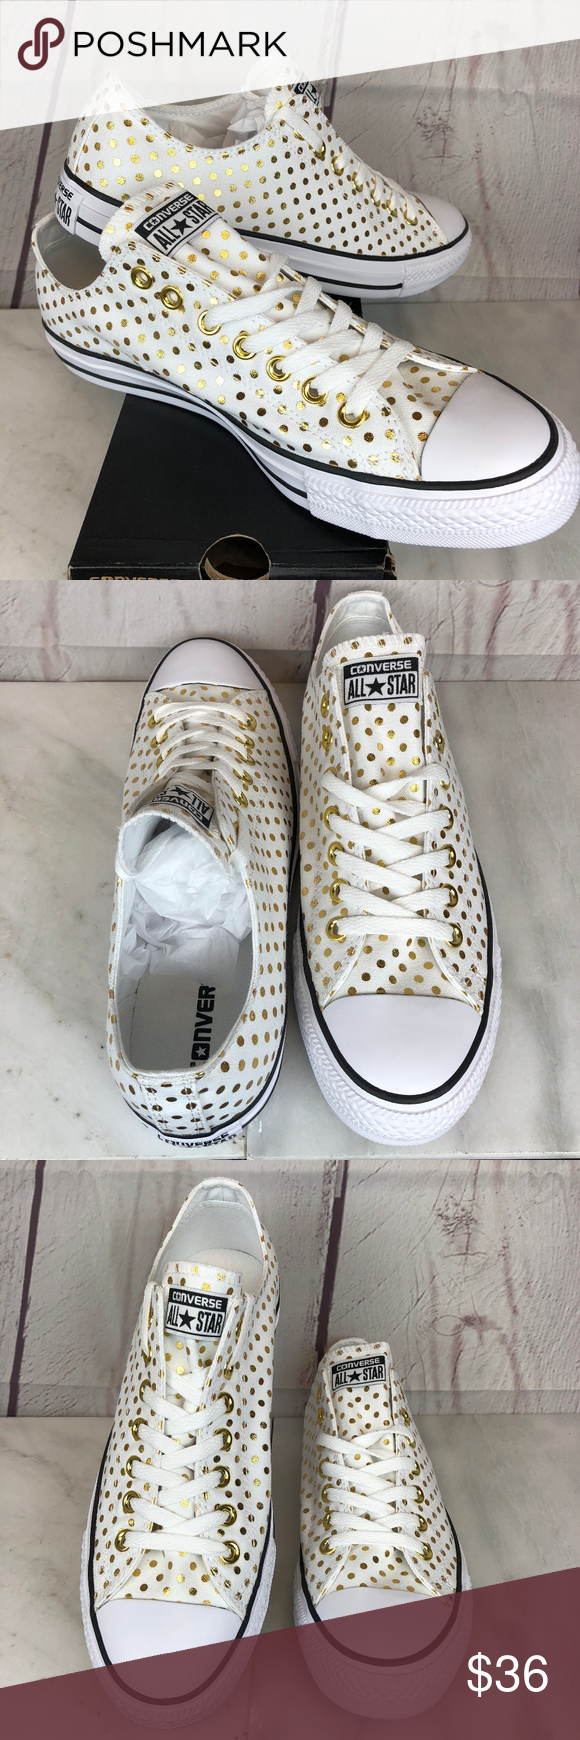 68881a445edea5 Converse OX White   Gold Polka Dot Canvas Sneakers Brand New in the Box  Size Women s